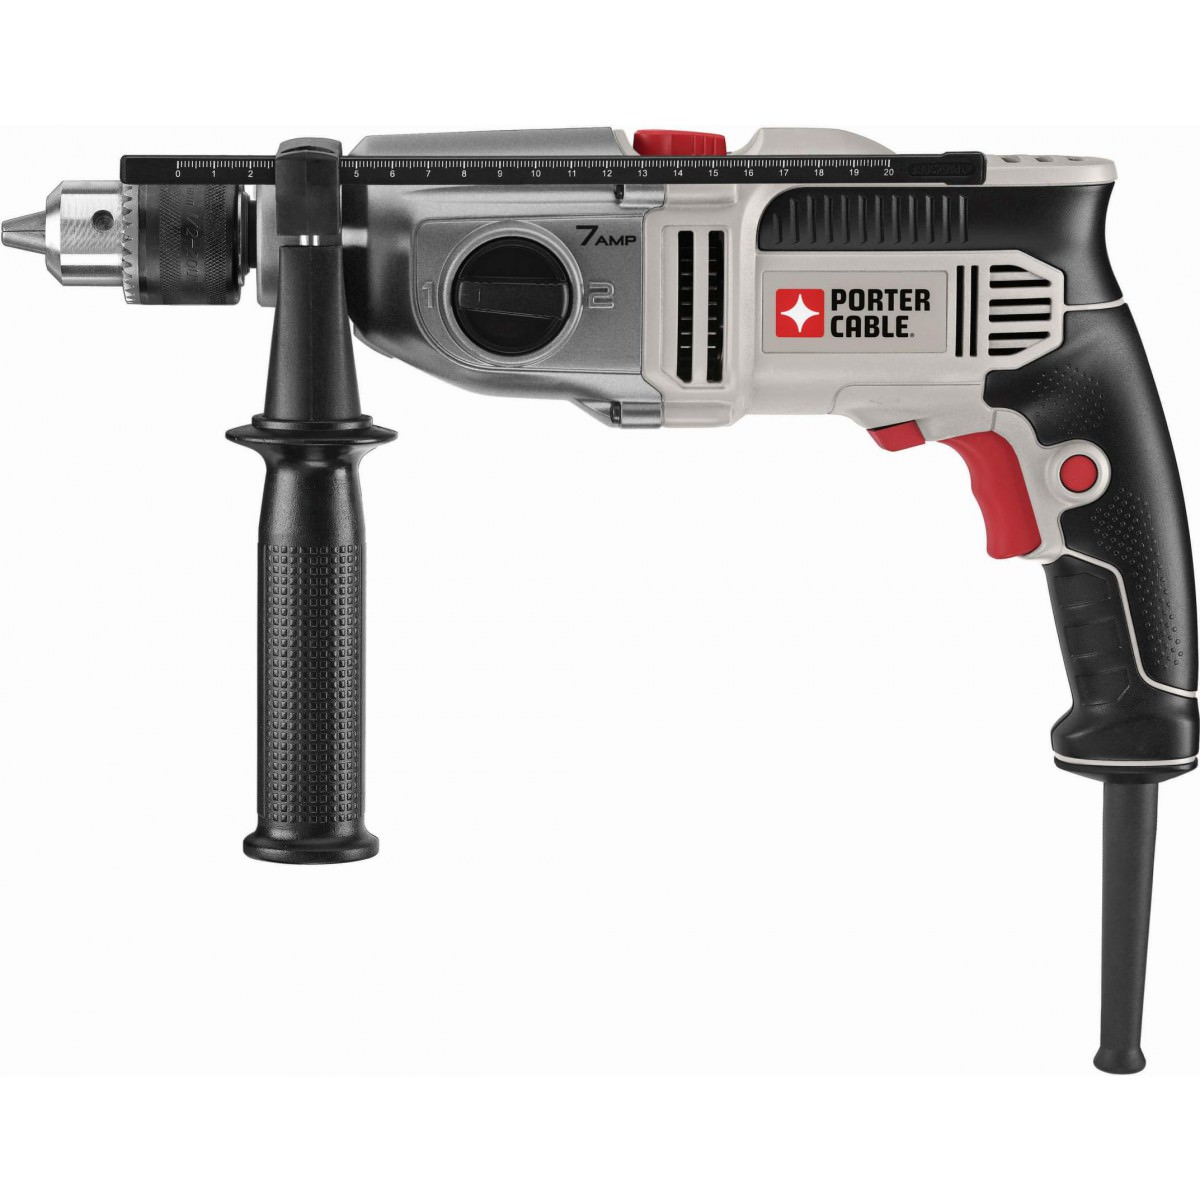 "Porter-Cable 1/2"" VSR 2 Speed Hammer Drill"